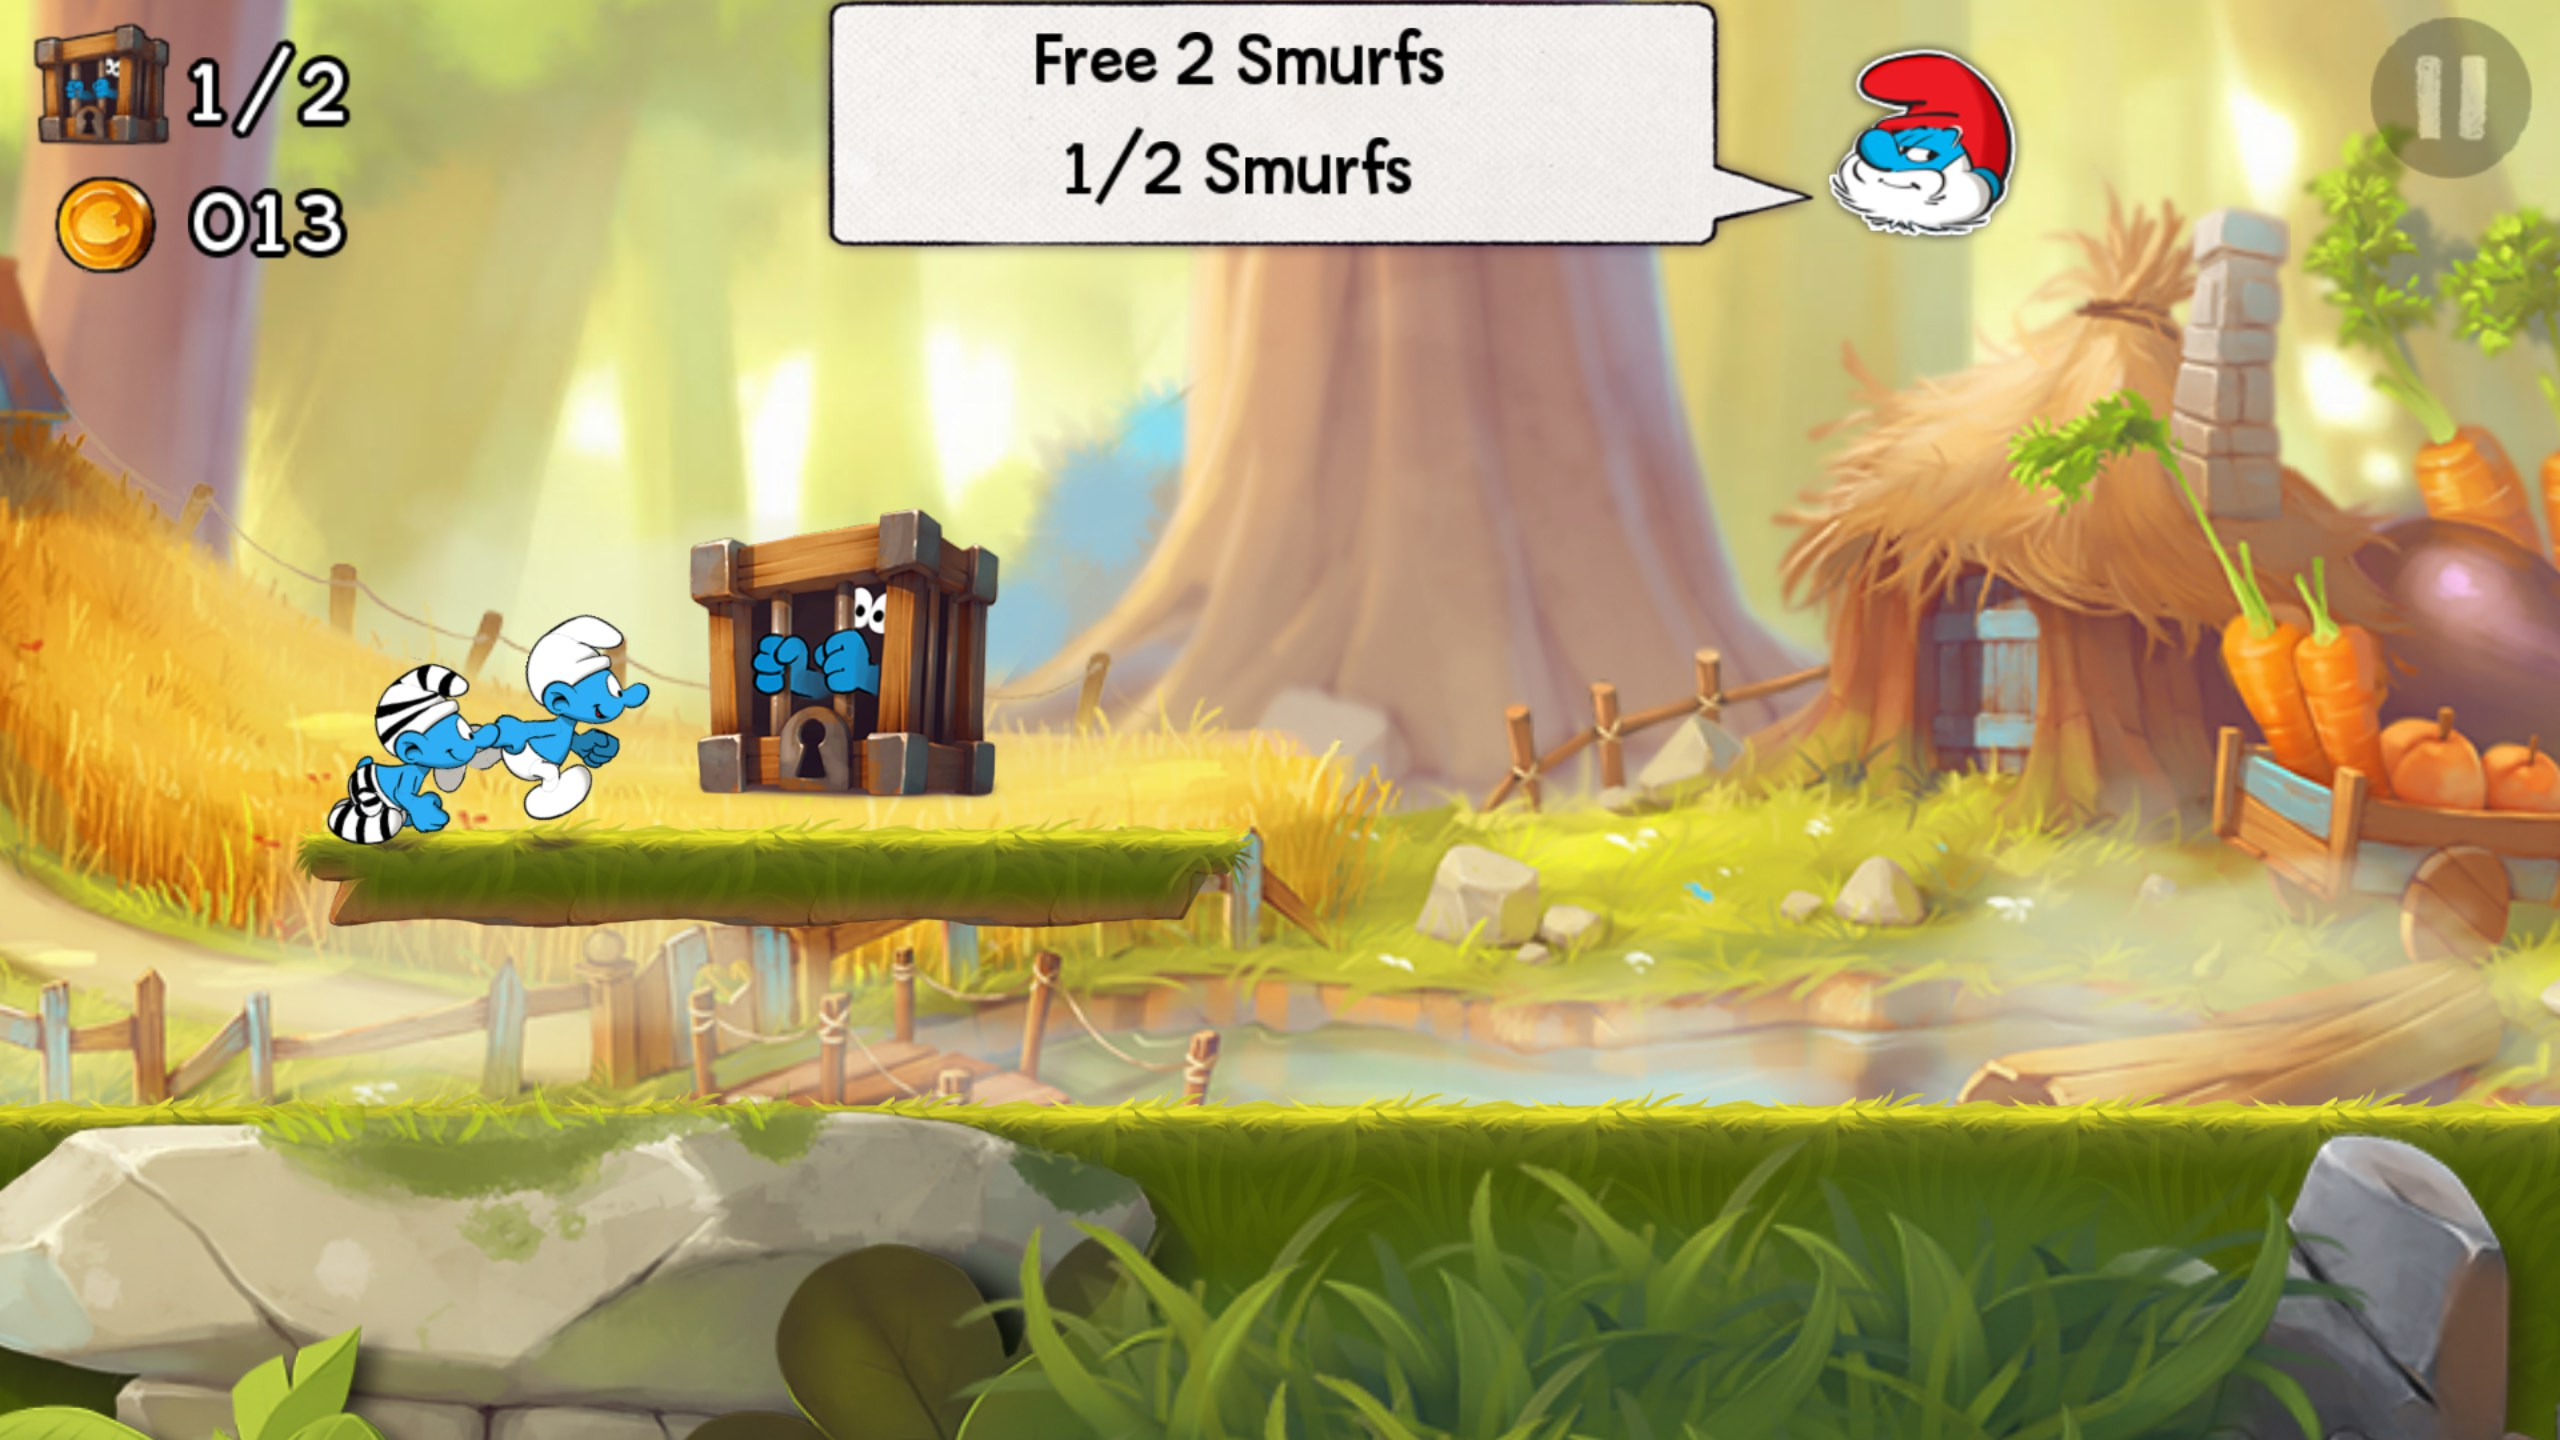 Smurfs Epic Run - Games for Android 2018 - Free download ...